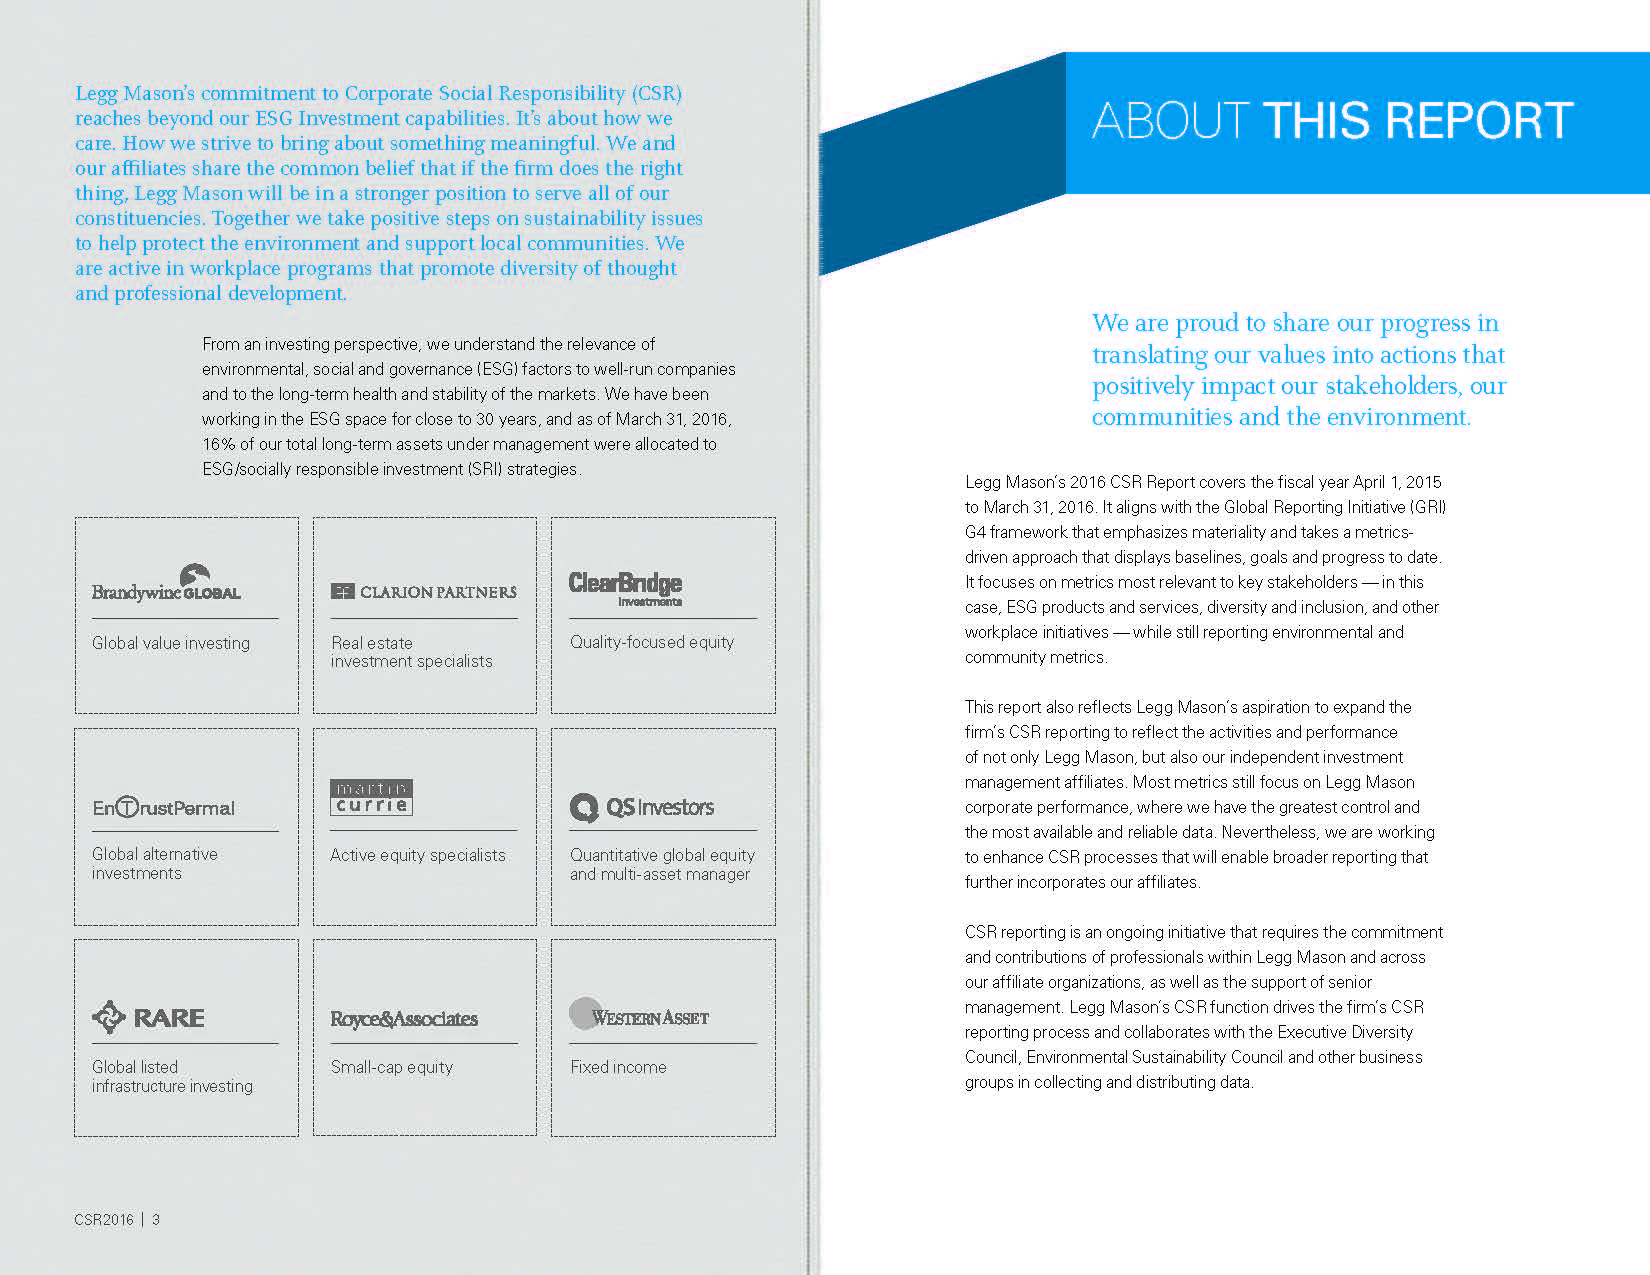 lm-csr-report_Page_03.jpg